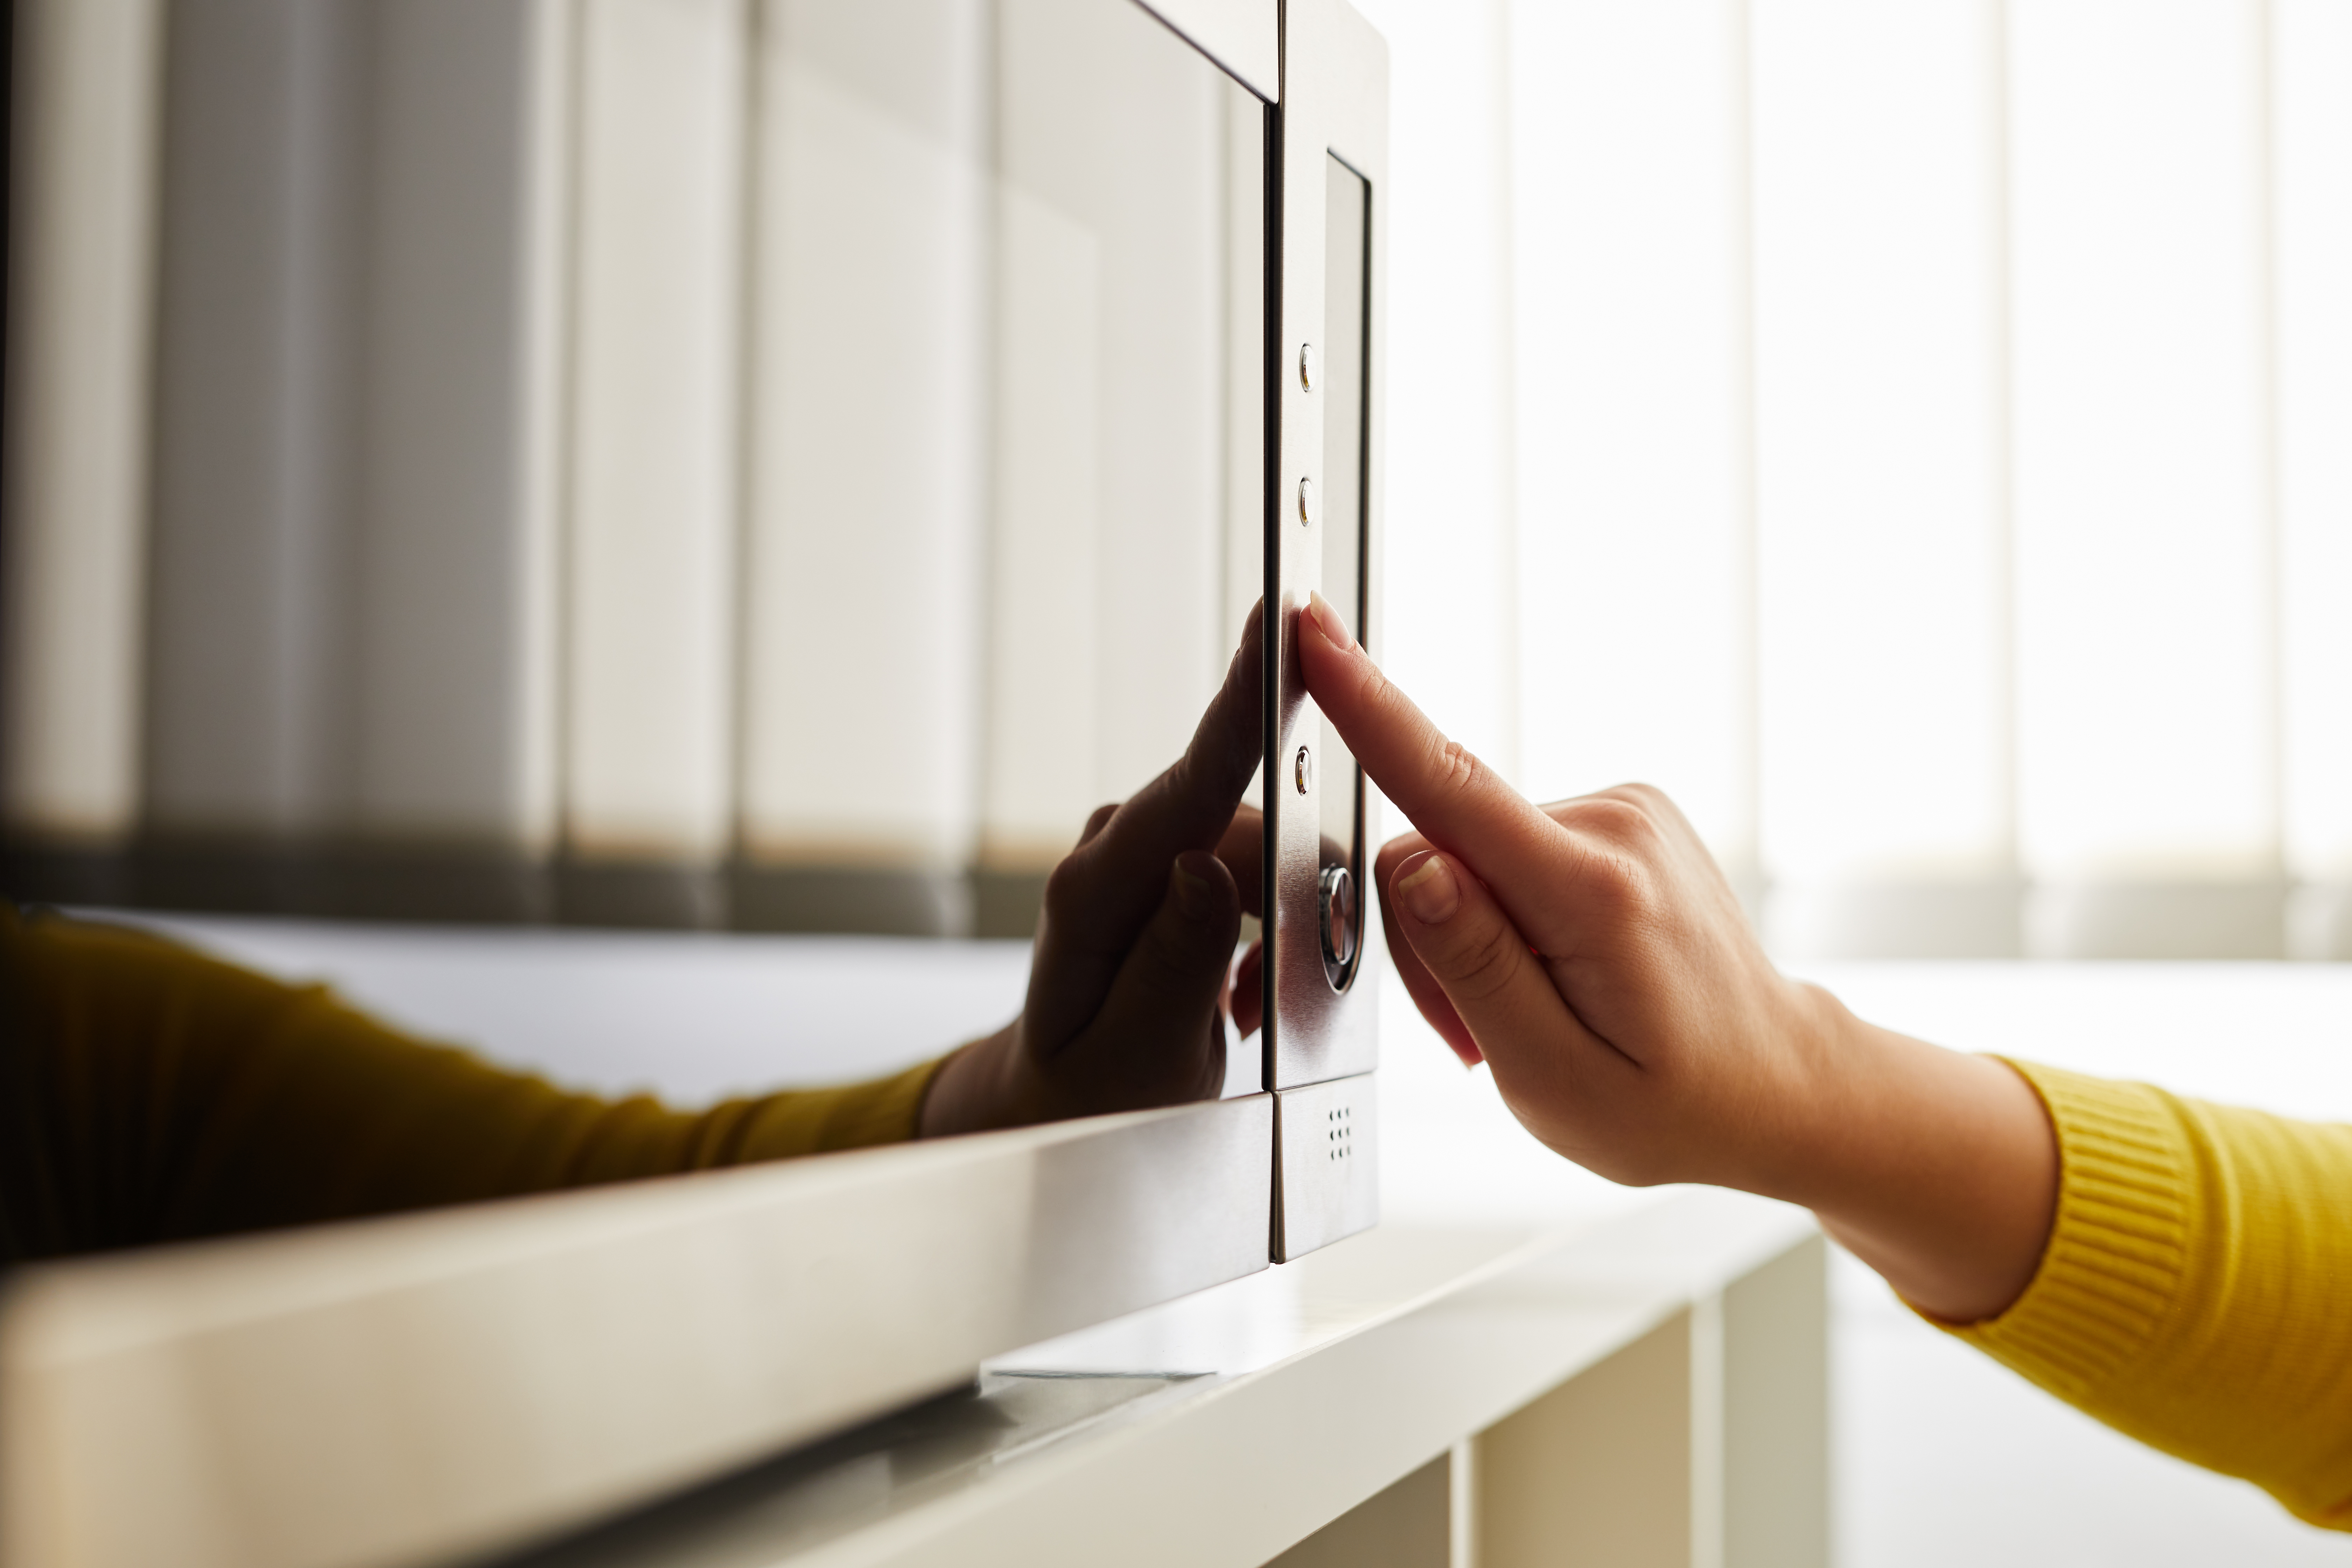 How to Make a Burnt Smell Go Away in a Microwave | Home Guides | SF Gate